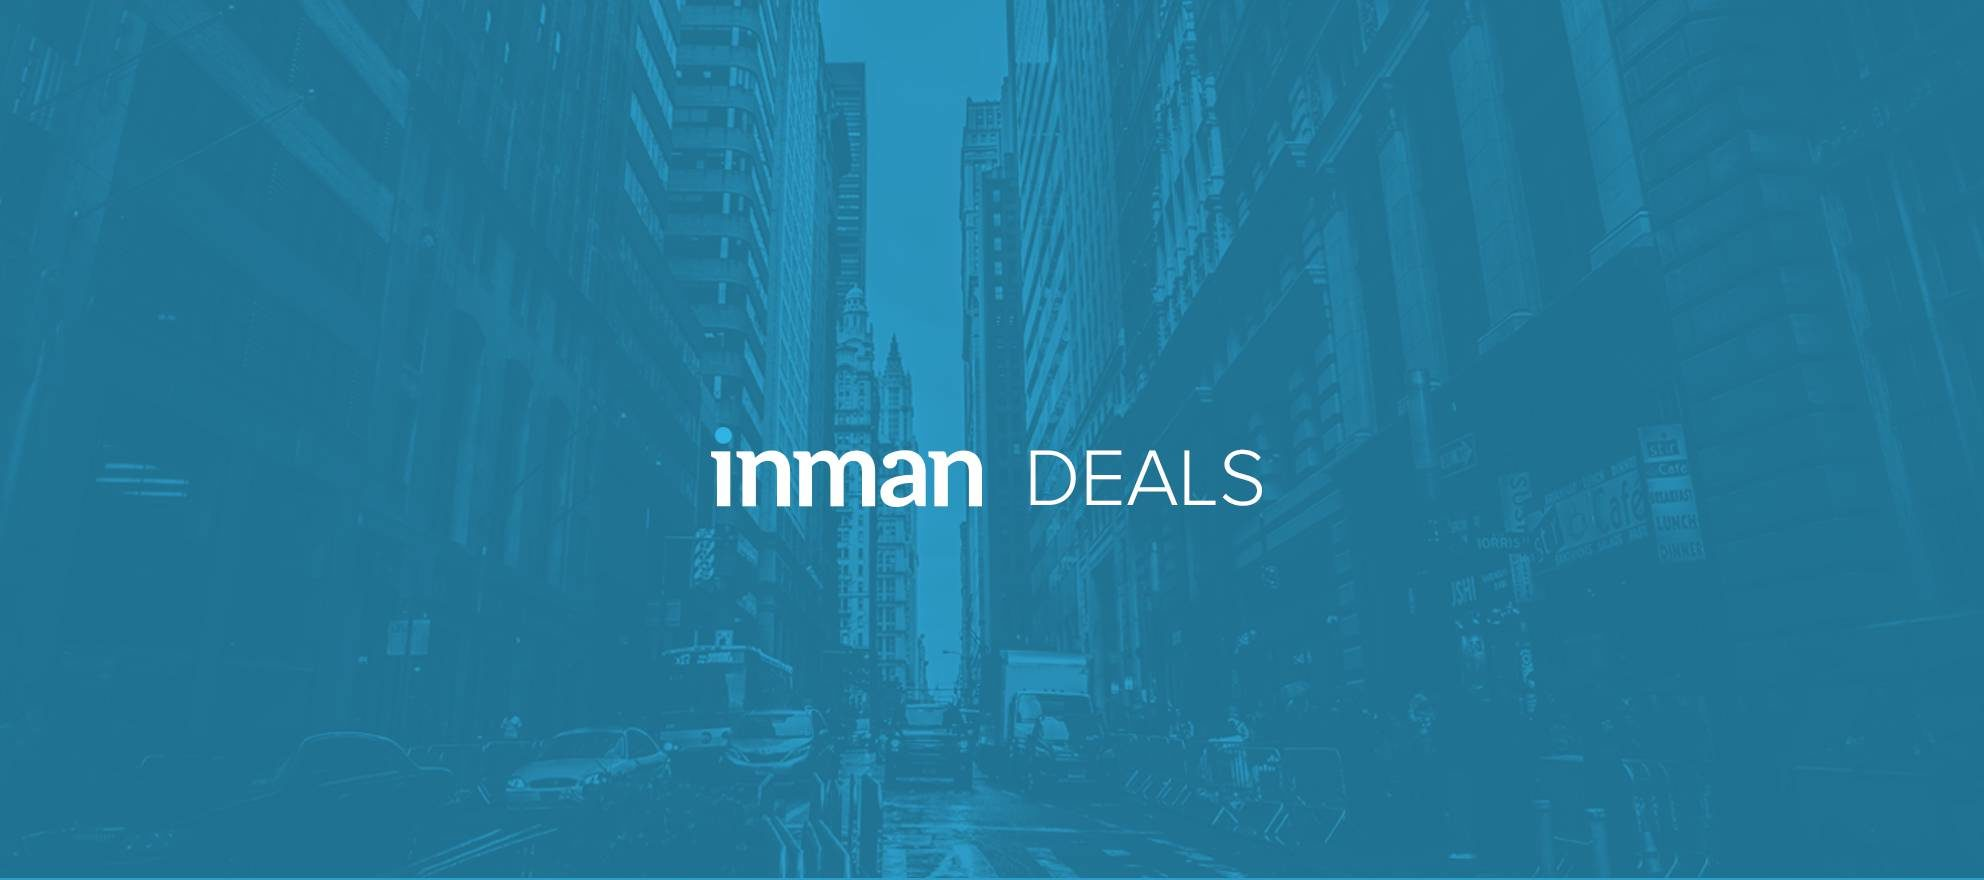 Inman launches 'Deals' -- a new opportunity to save big on the latest tech tools for agents, brokers